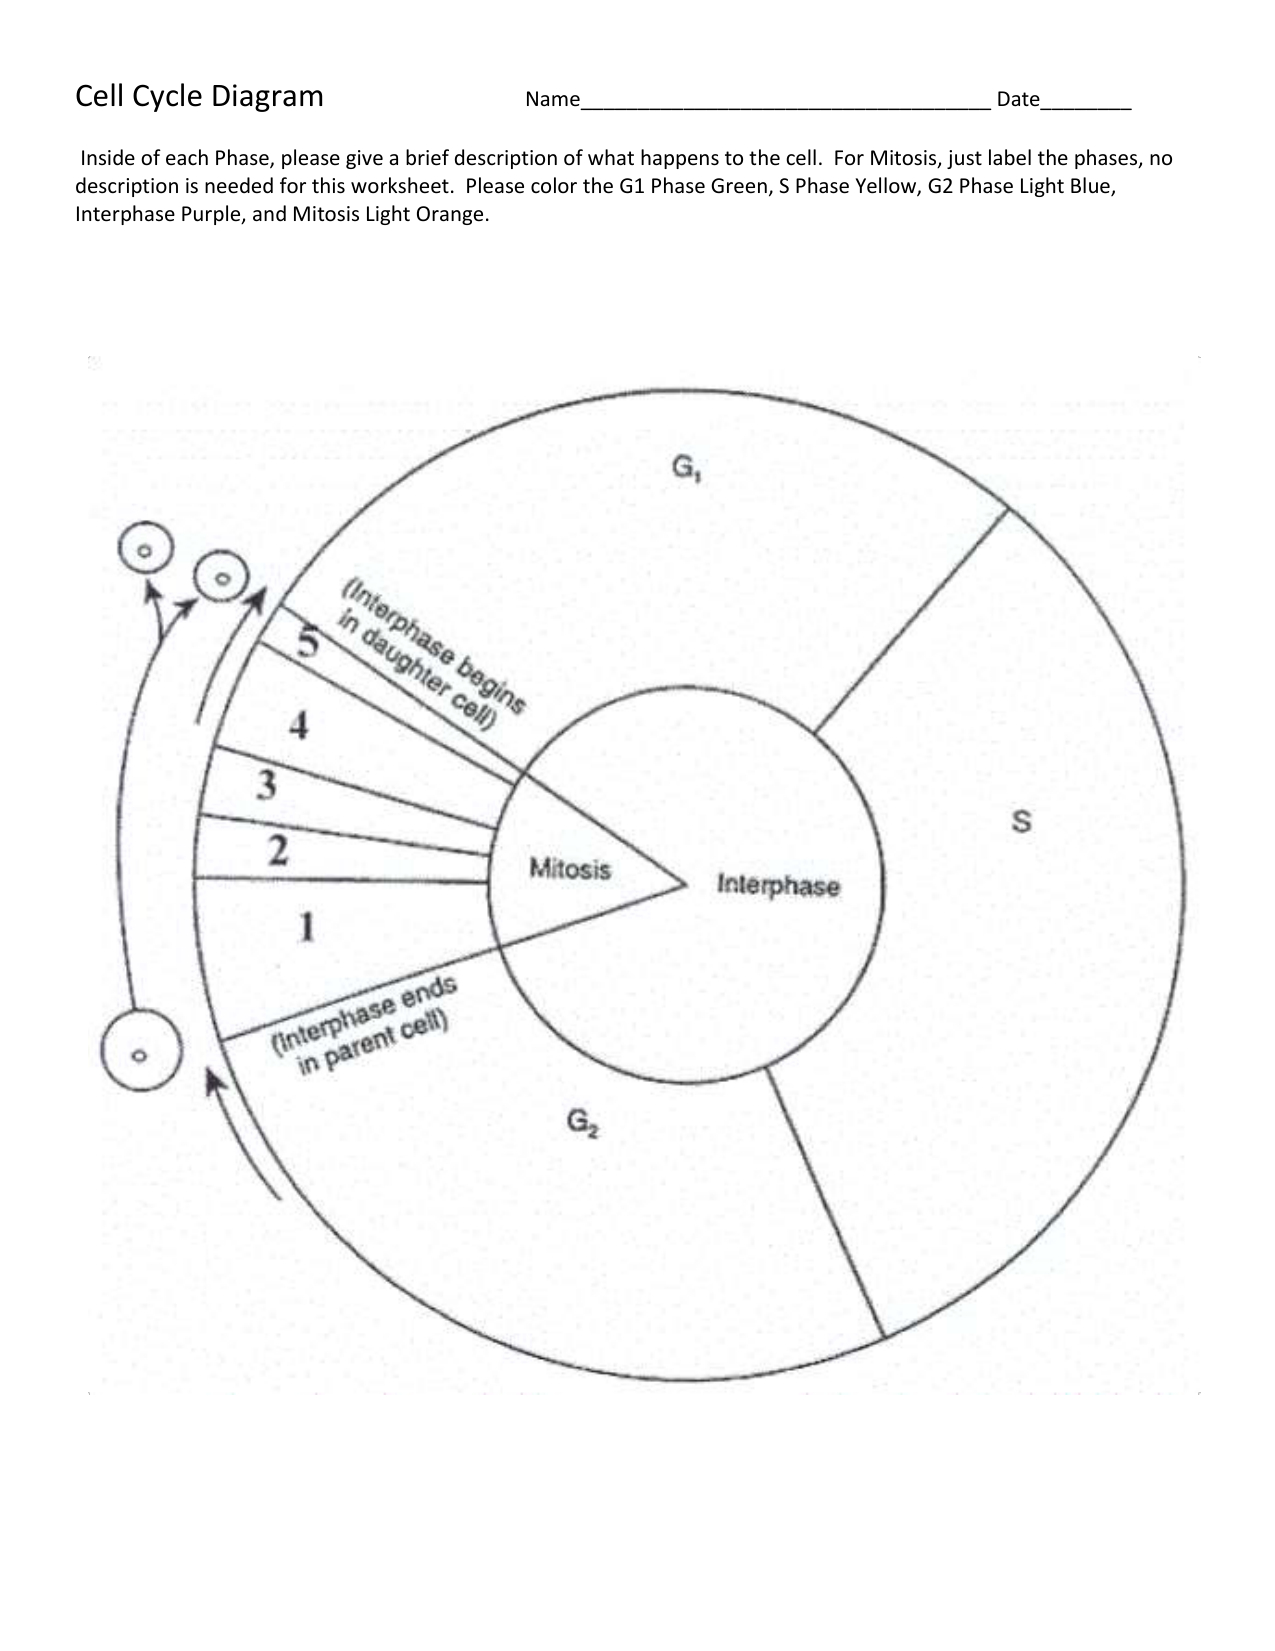 Diagram Of Cell Cycle Cell Cycle Diagram